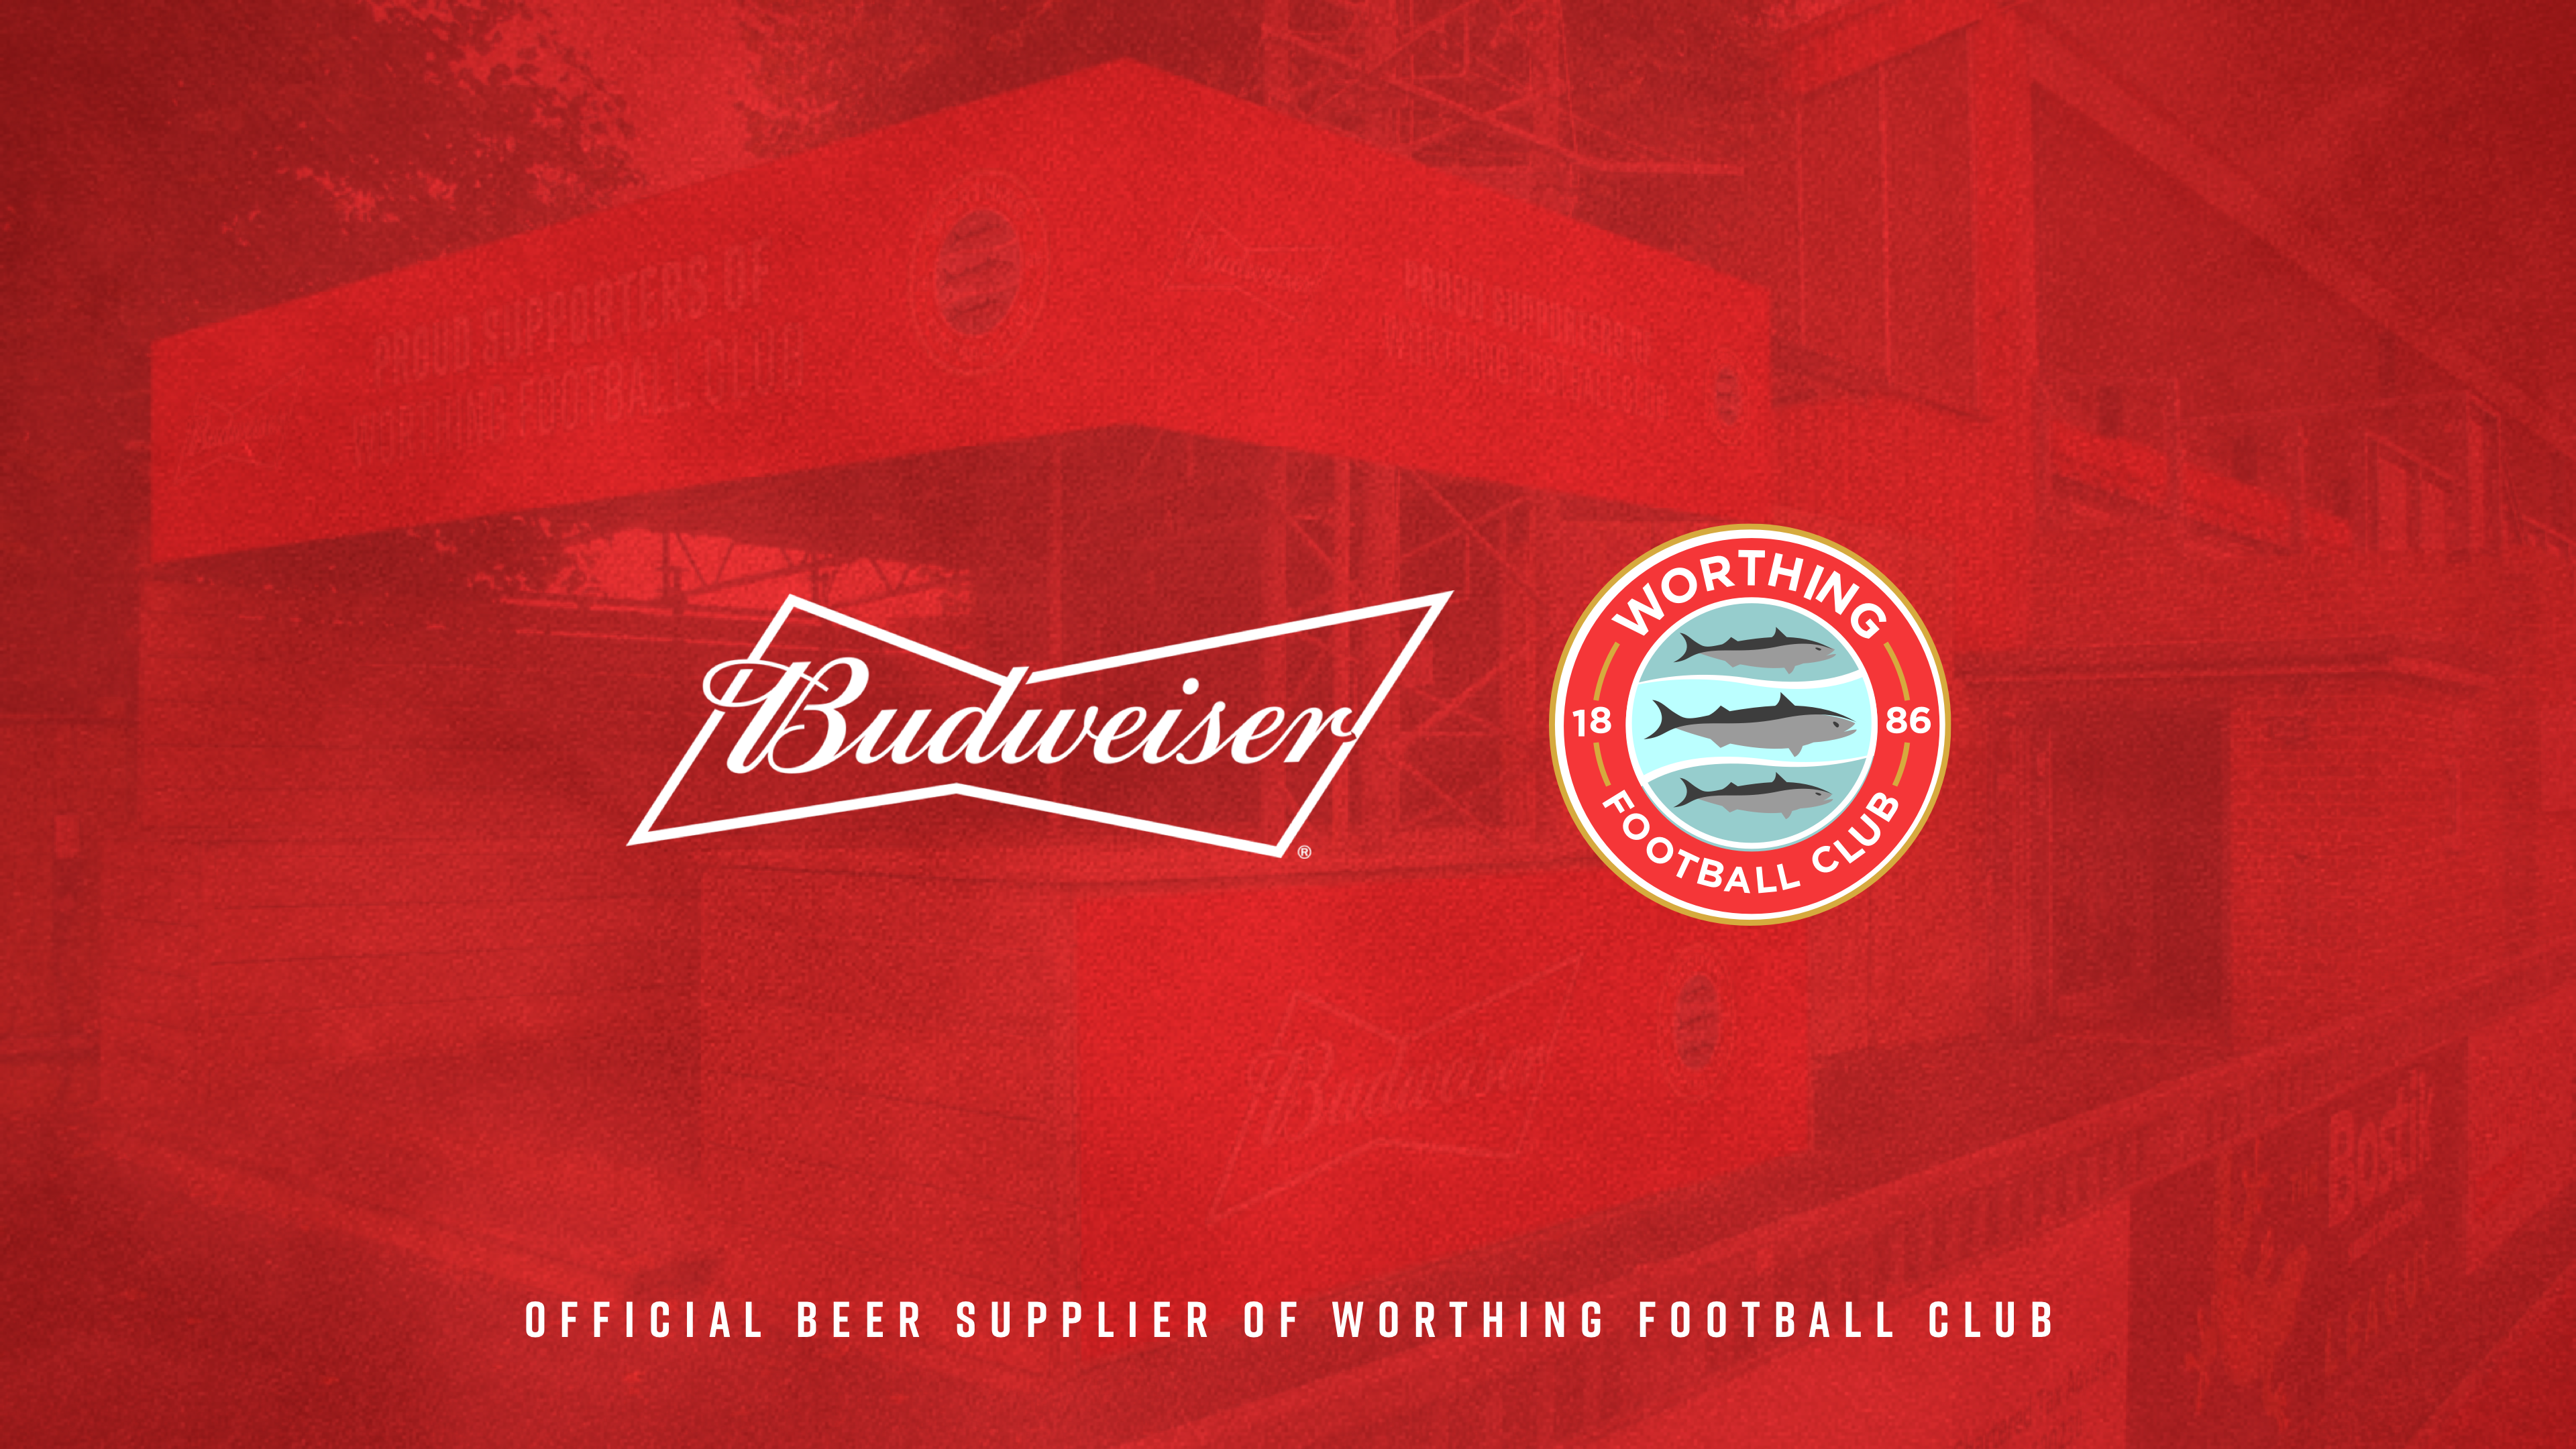 Read the full article - Worthing Football Club Announces Budweiser as Official Beer Supplier